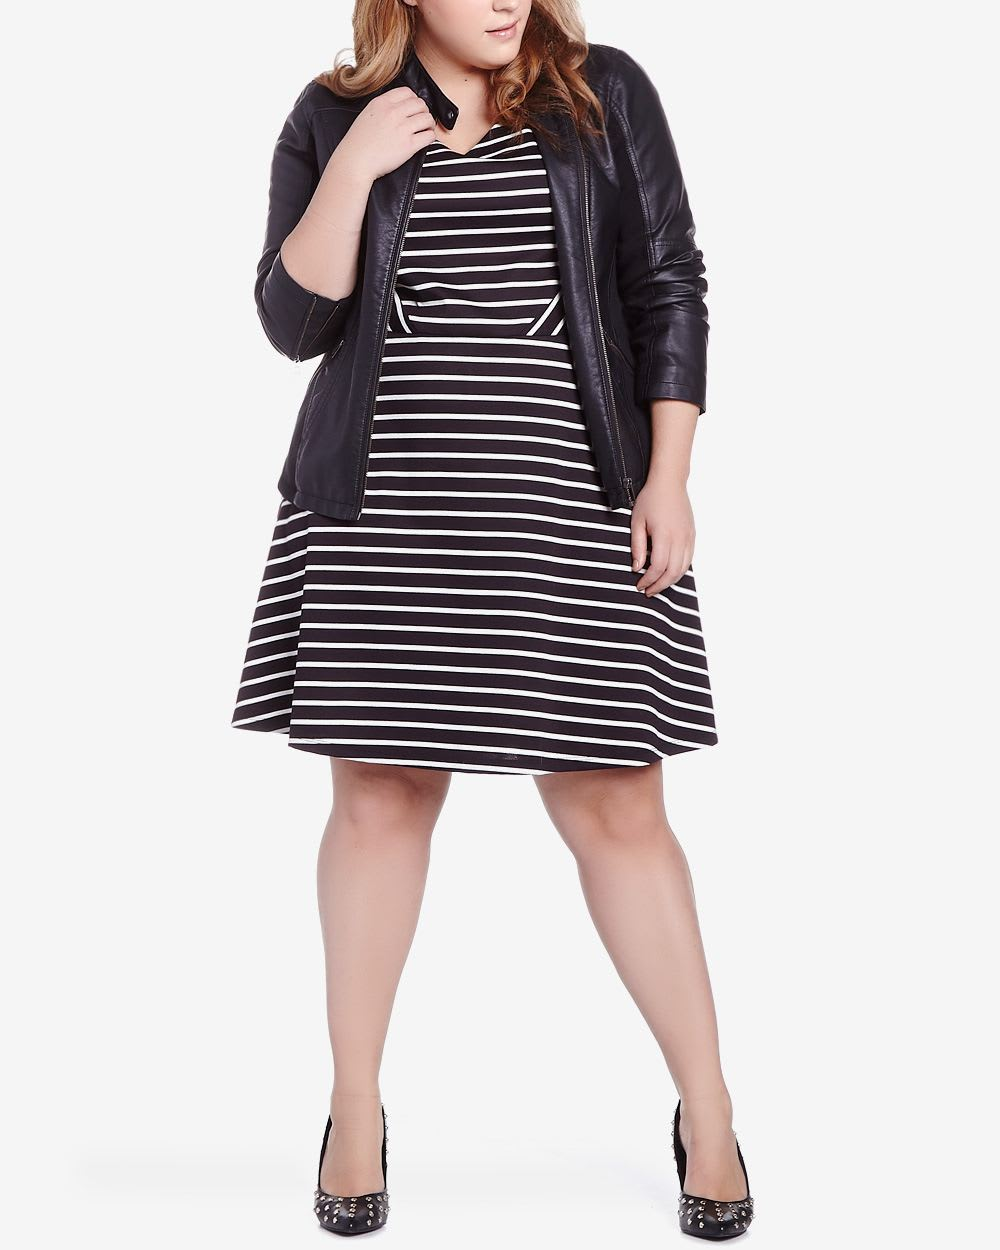 Shop Debs for Plus Size Clothing at Affordable Prices Including Dresses, Tops, Bottoms, Denim, Accessories and Many More. Deb Shops.